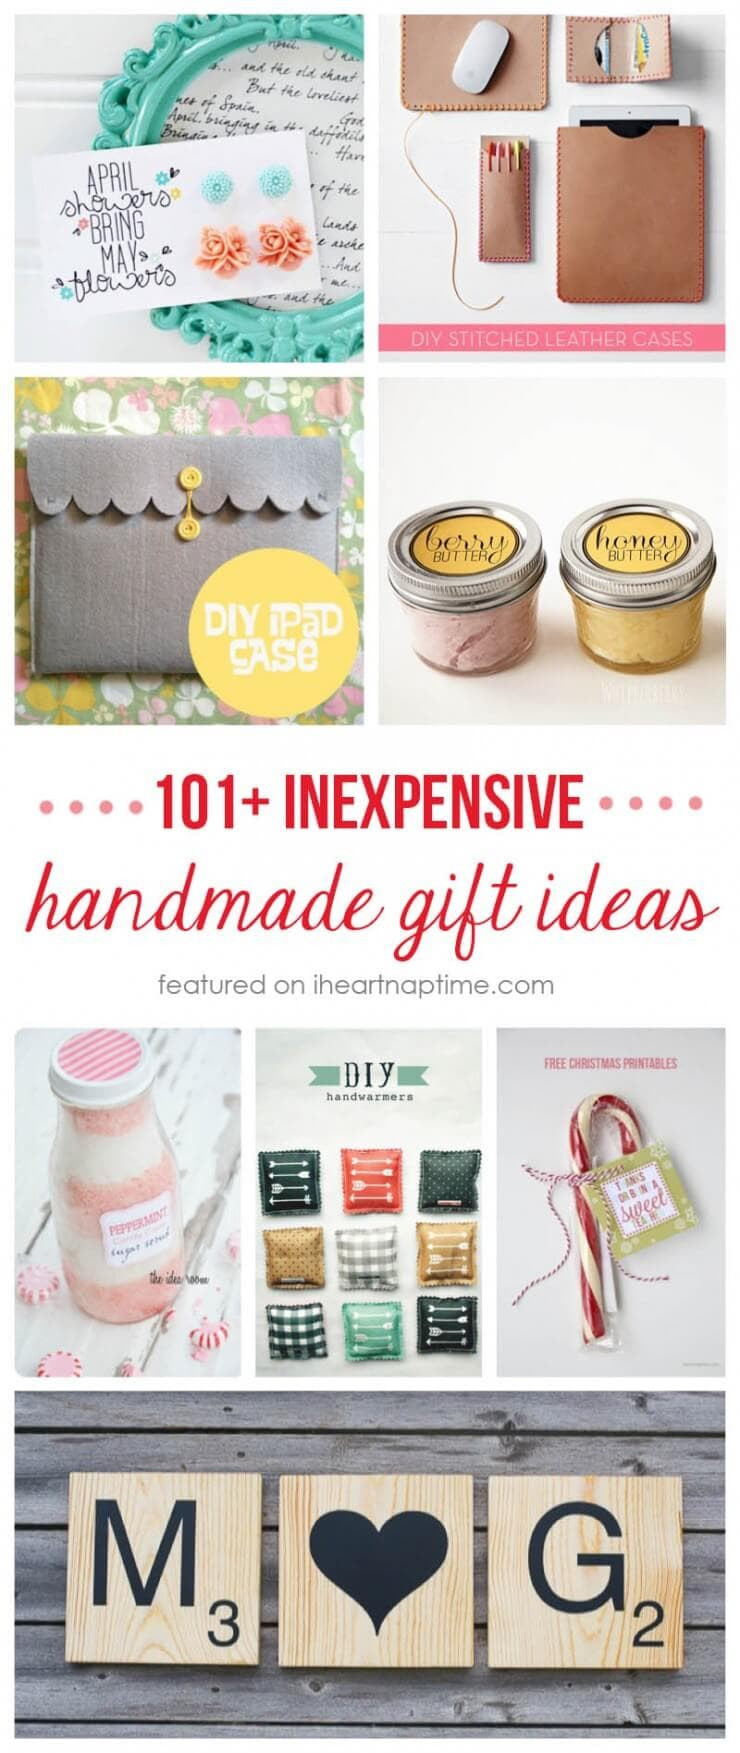 DIY Easy Christmas Gifts  50 homemade t ideas to make for under $5 I Heart Nap Time